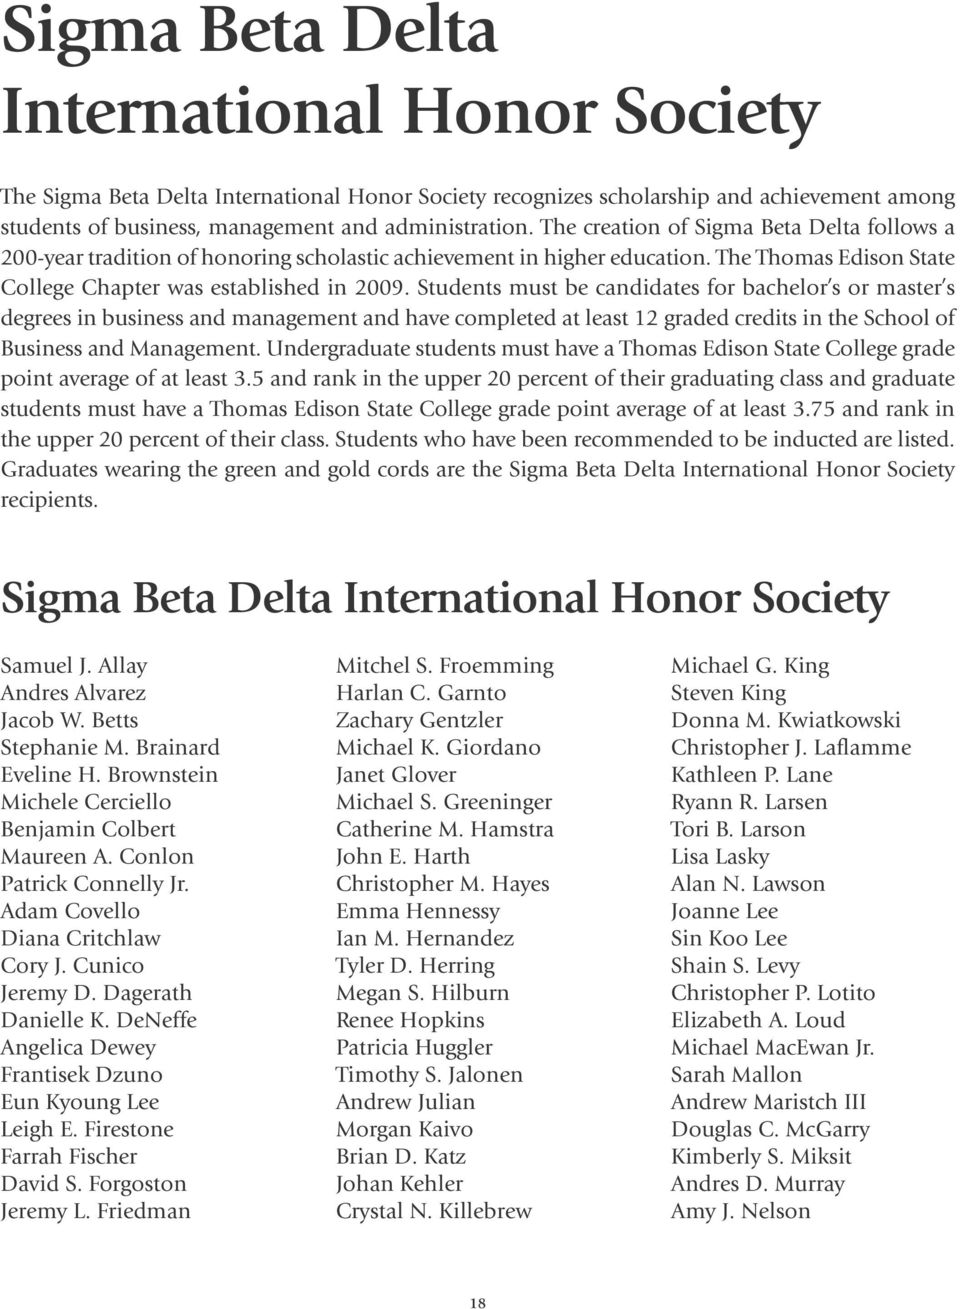 honor society pledges pdf students must be candidates for bachelor s or master s degrees in business and management and